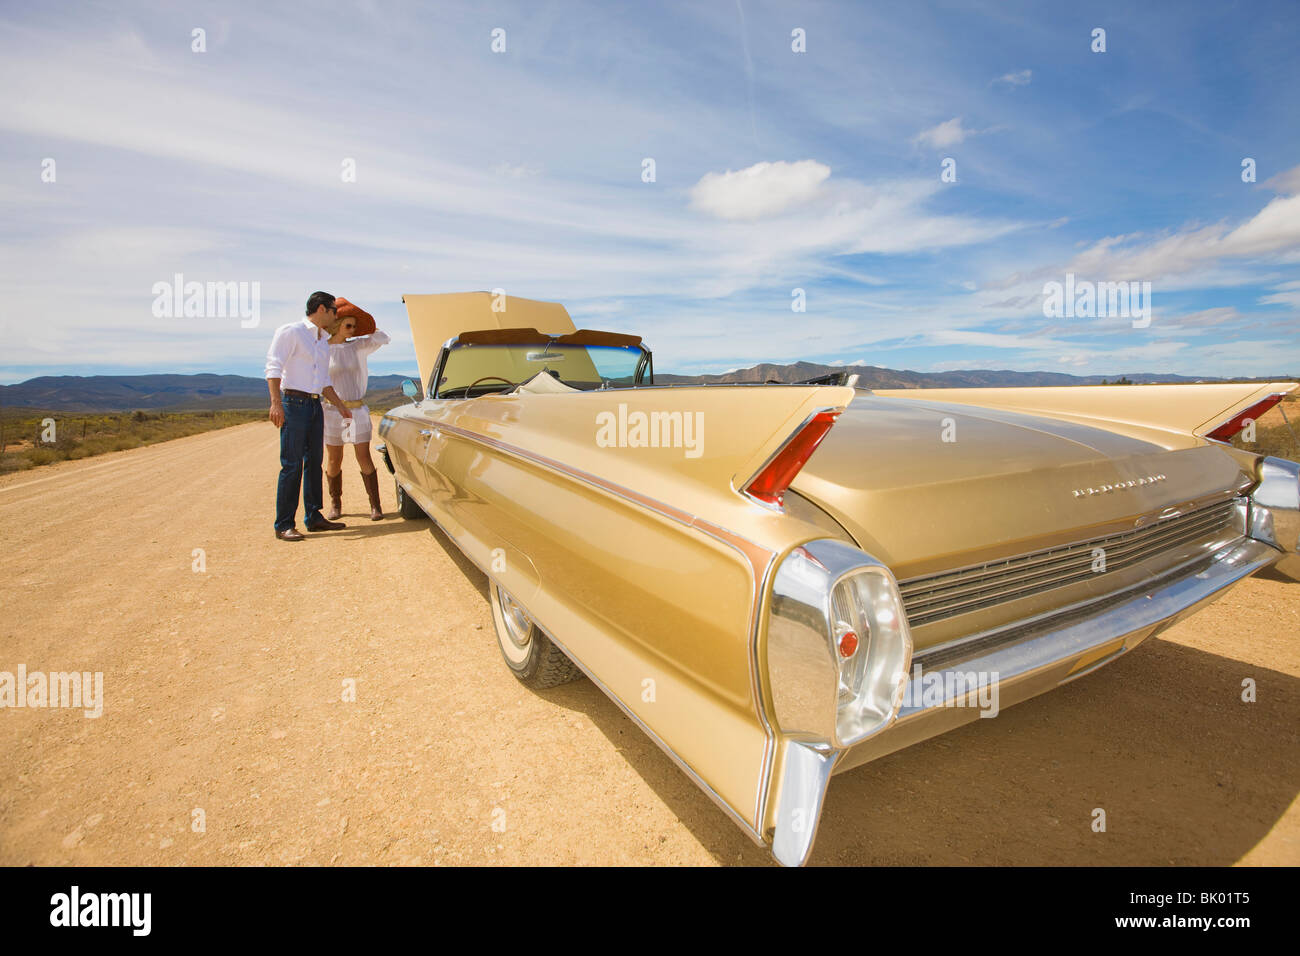 Couple with car trouble in desert - Stock Image